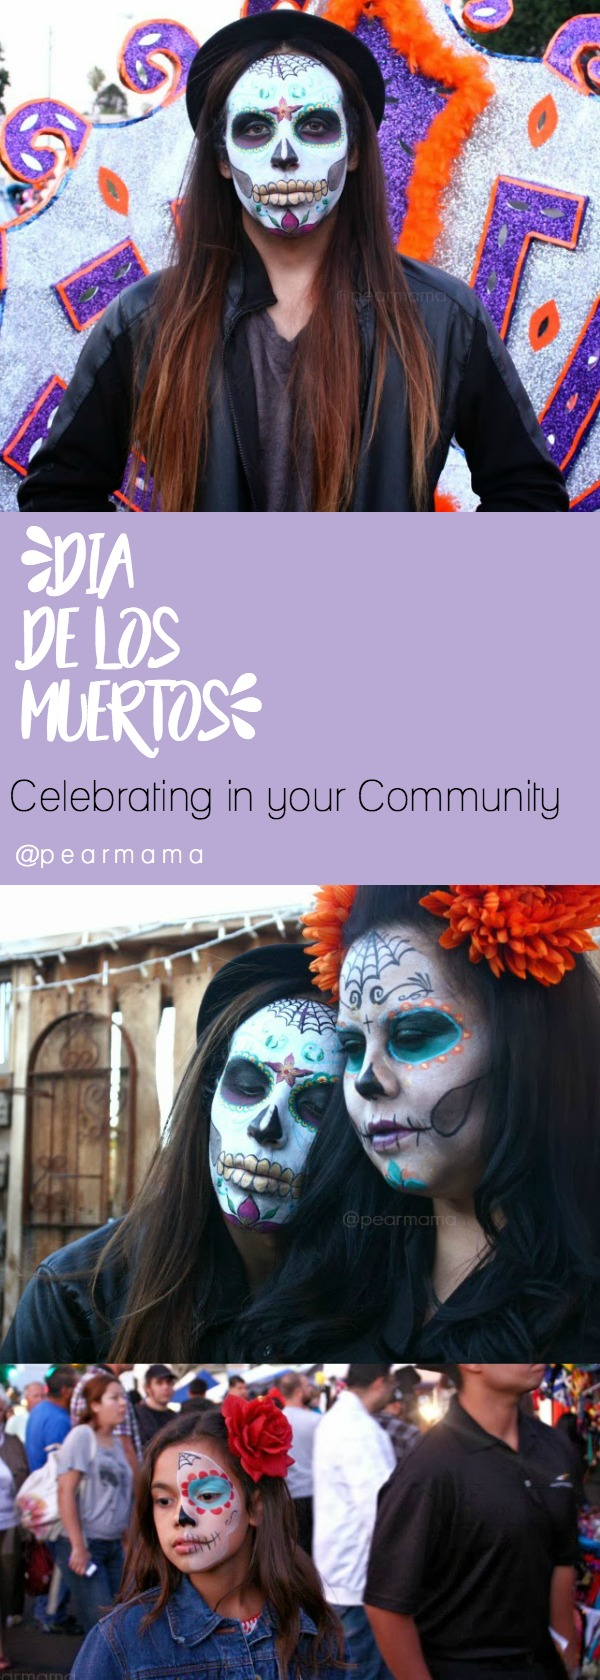 We celebrate Dia de los Muertos by painting our face like calaveras and heading to the Day of the Dead festivities with our family in downtown Riverside.